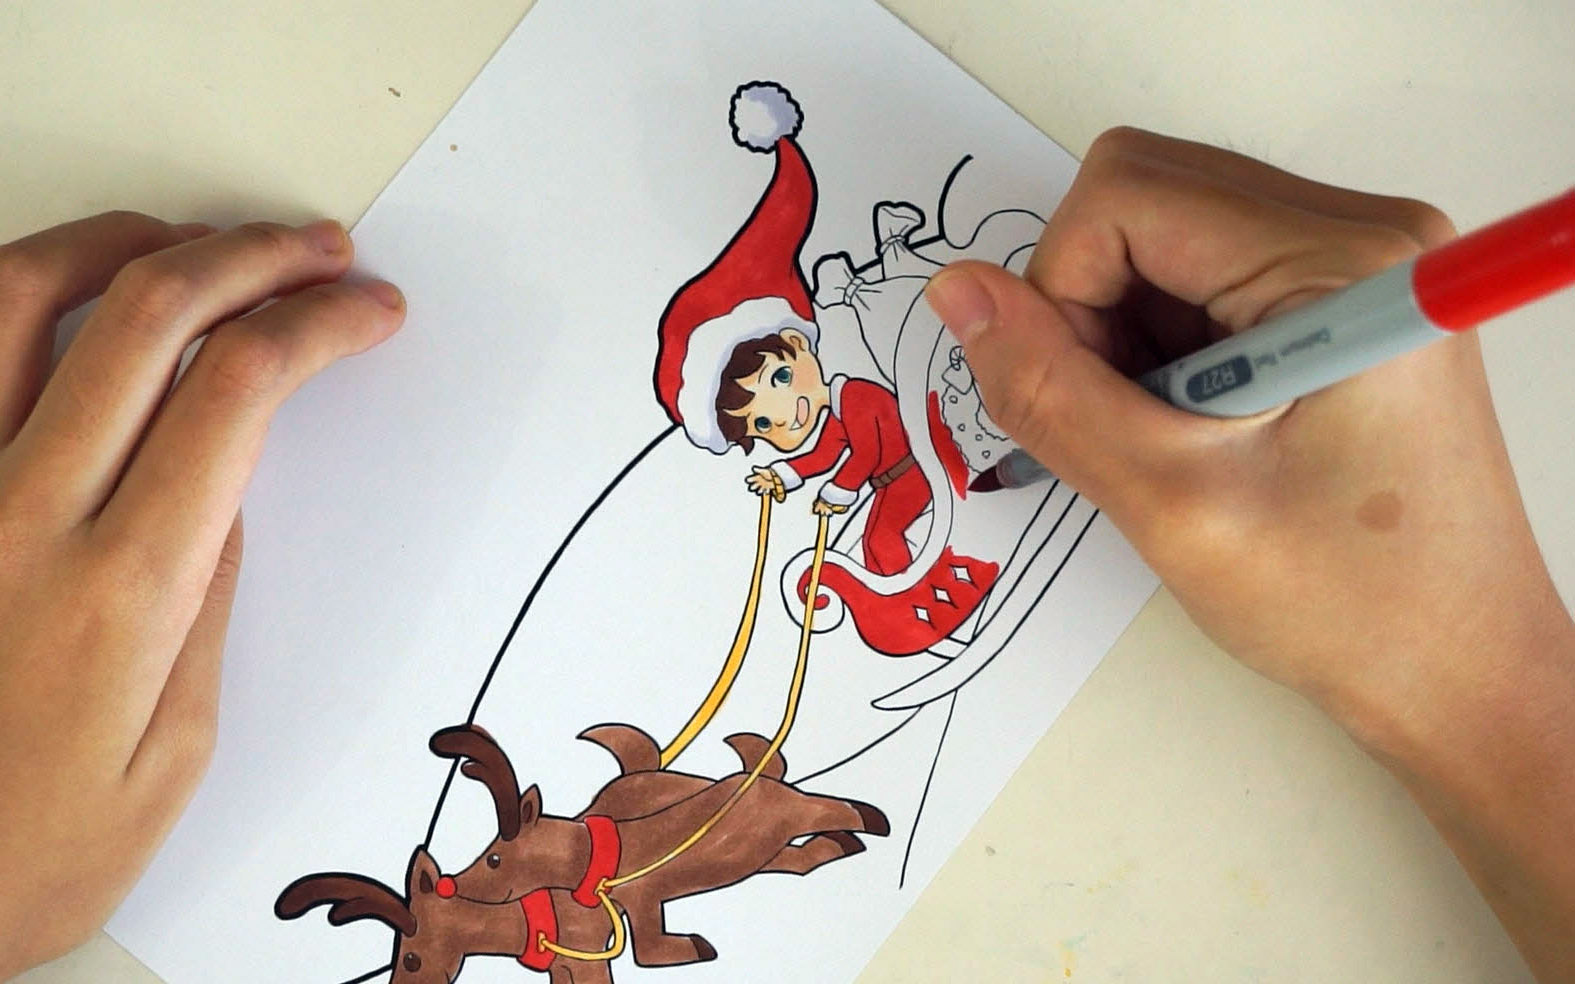 Coloring in the foreground of the holiday template.